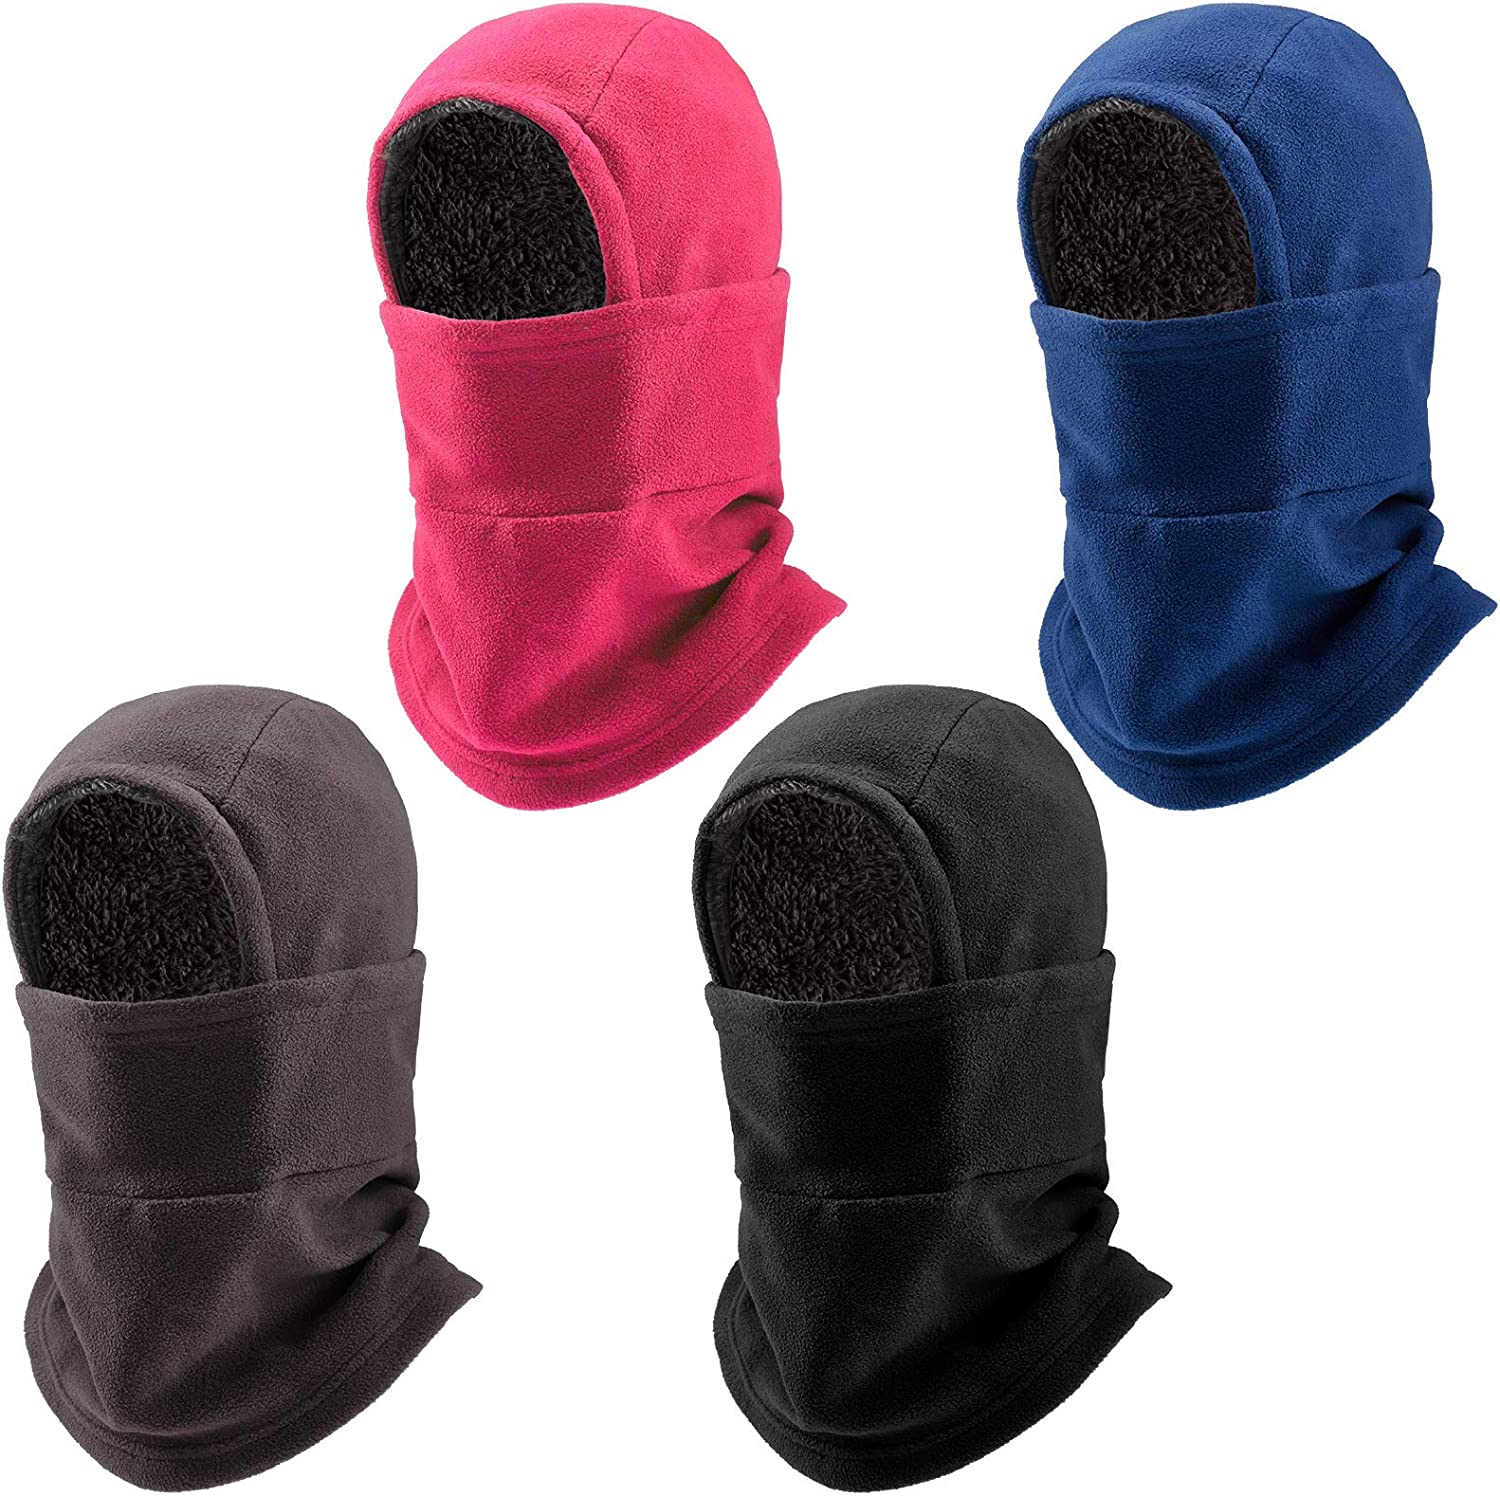 4 Pieces Fresno Mall Outlet SALE Winter Warm Adjustable Hooded Women Cover Face Men for